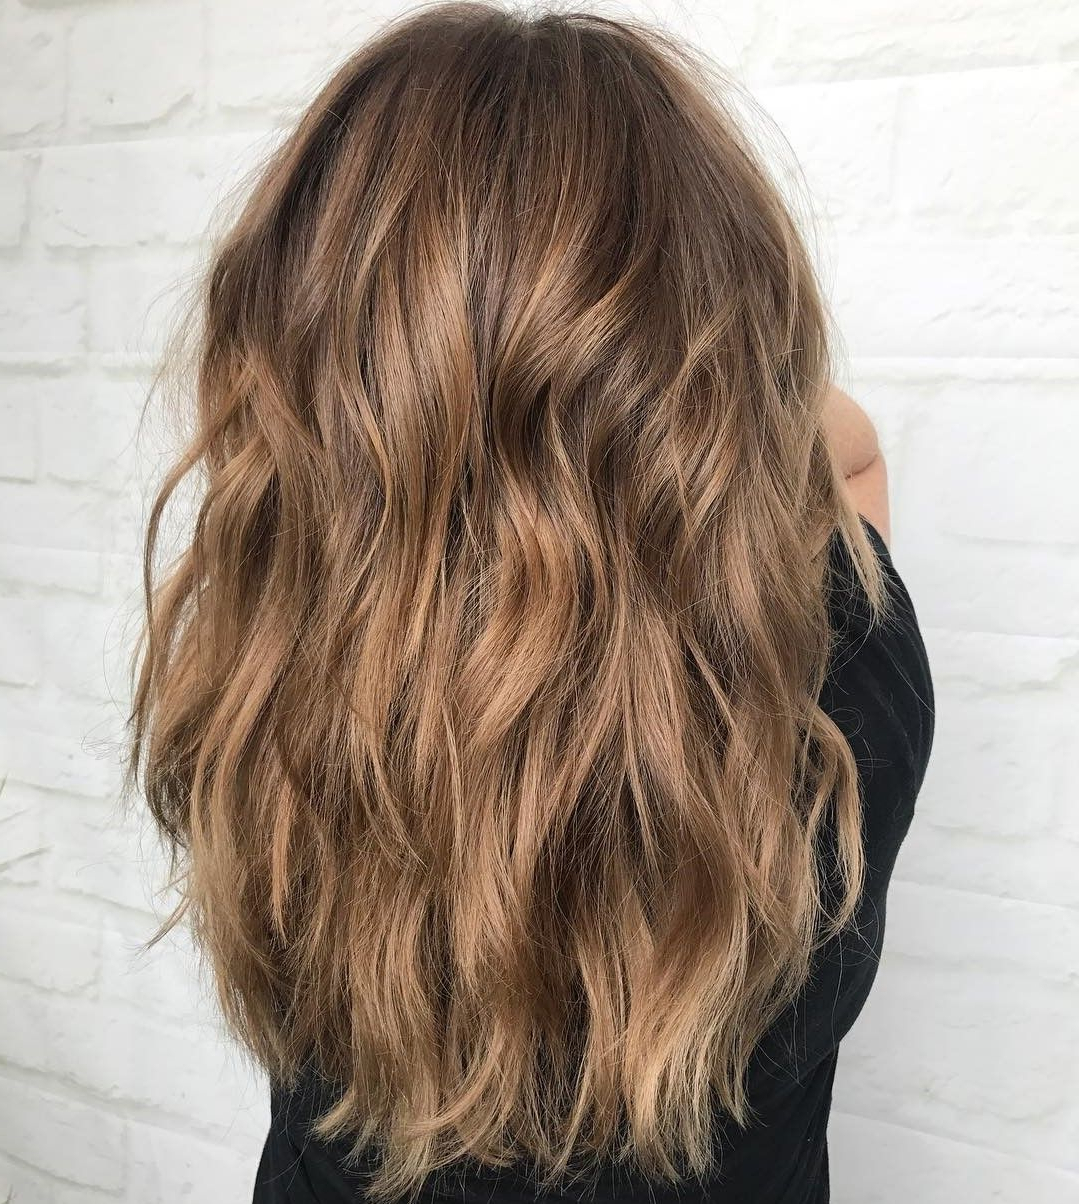 Fashionable Long Light Brown Shag Haircuts Pertaining To 60 Lovely Long Shag Haircuts For Effortless Stylish Looks In (Gallery 2 of 20)